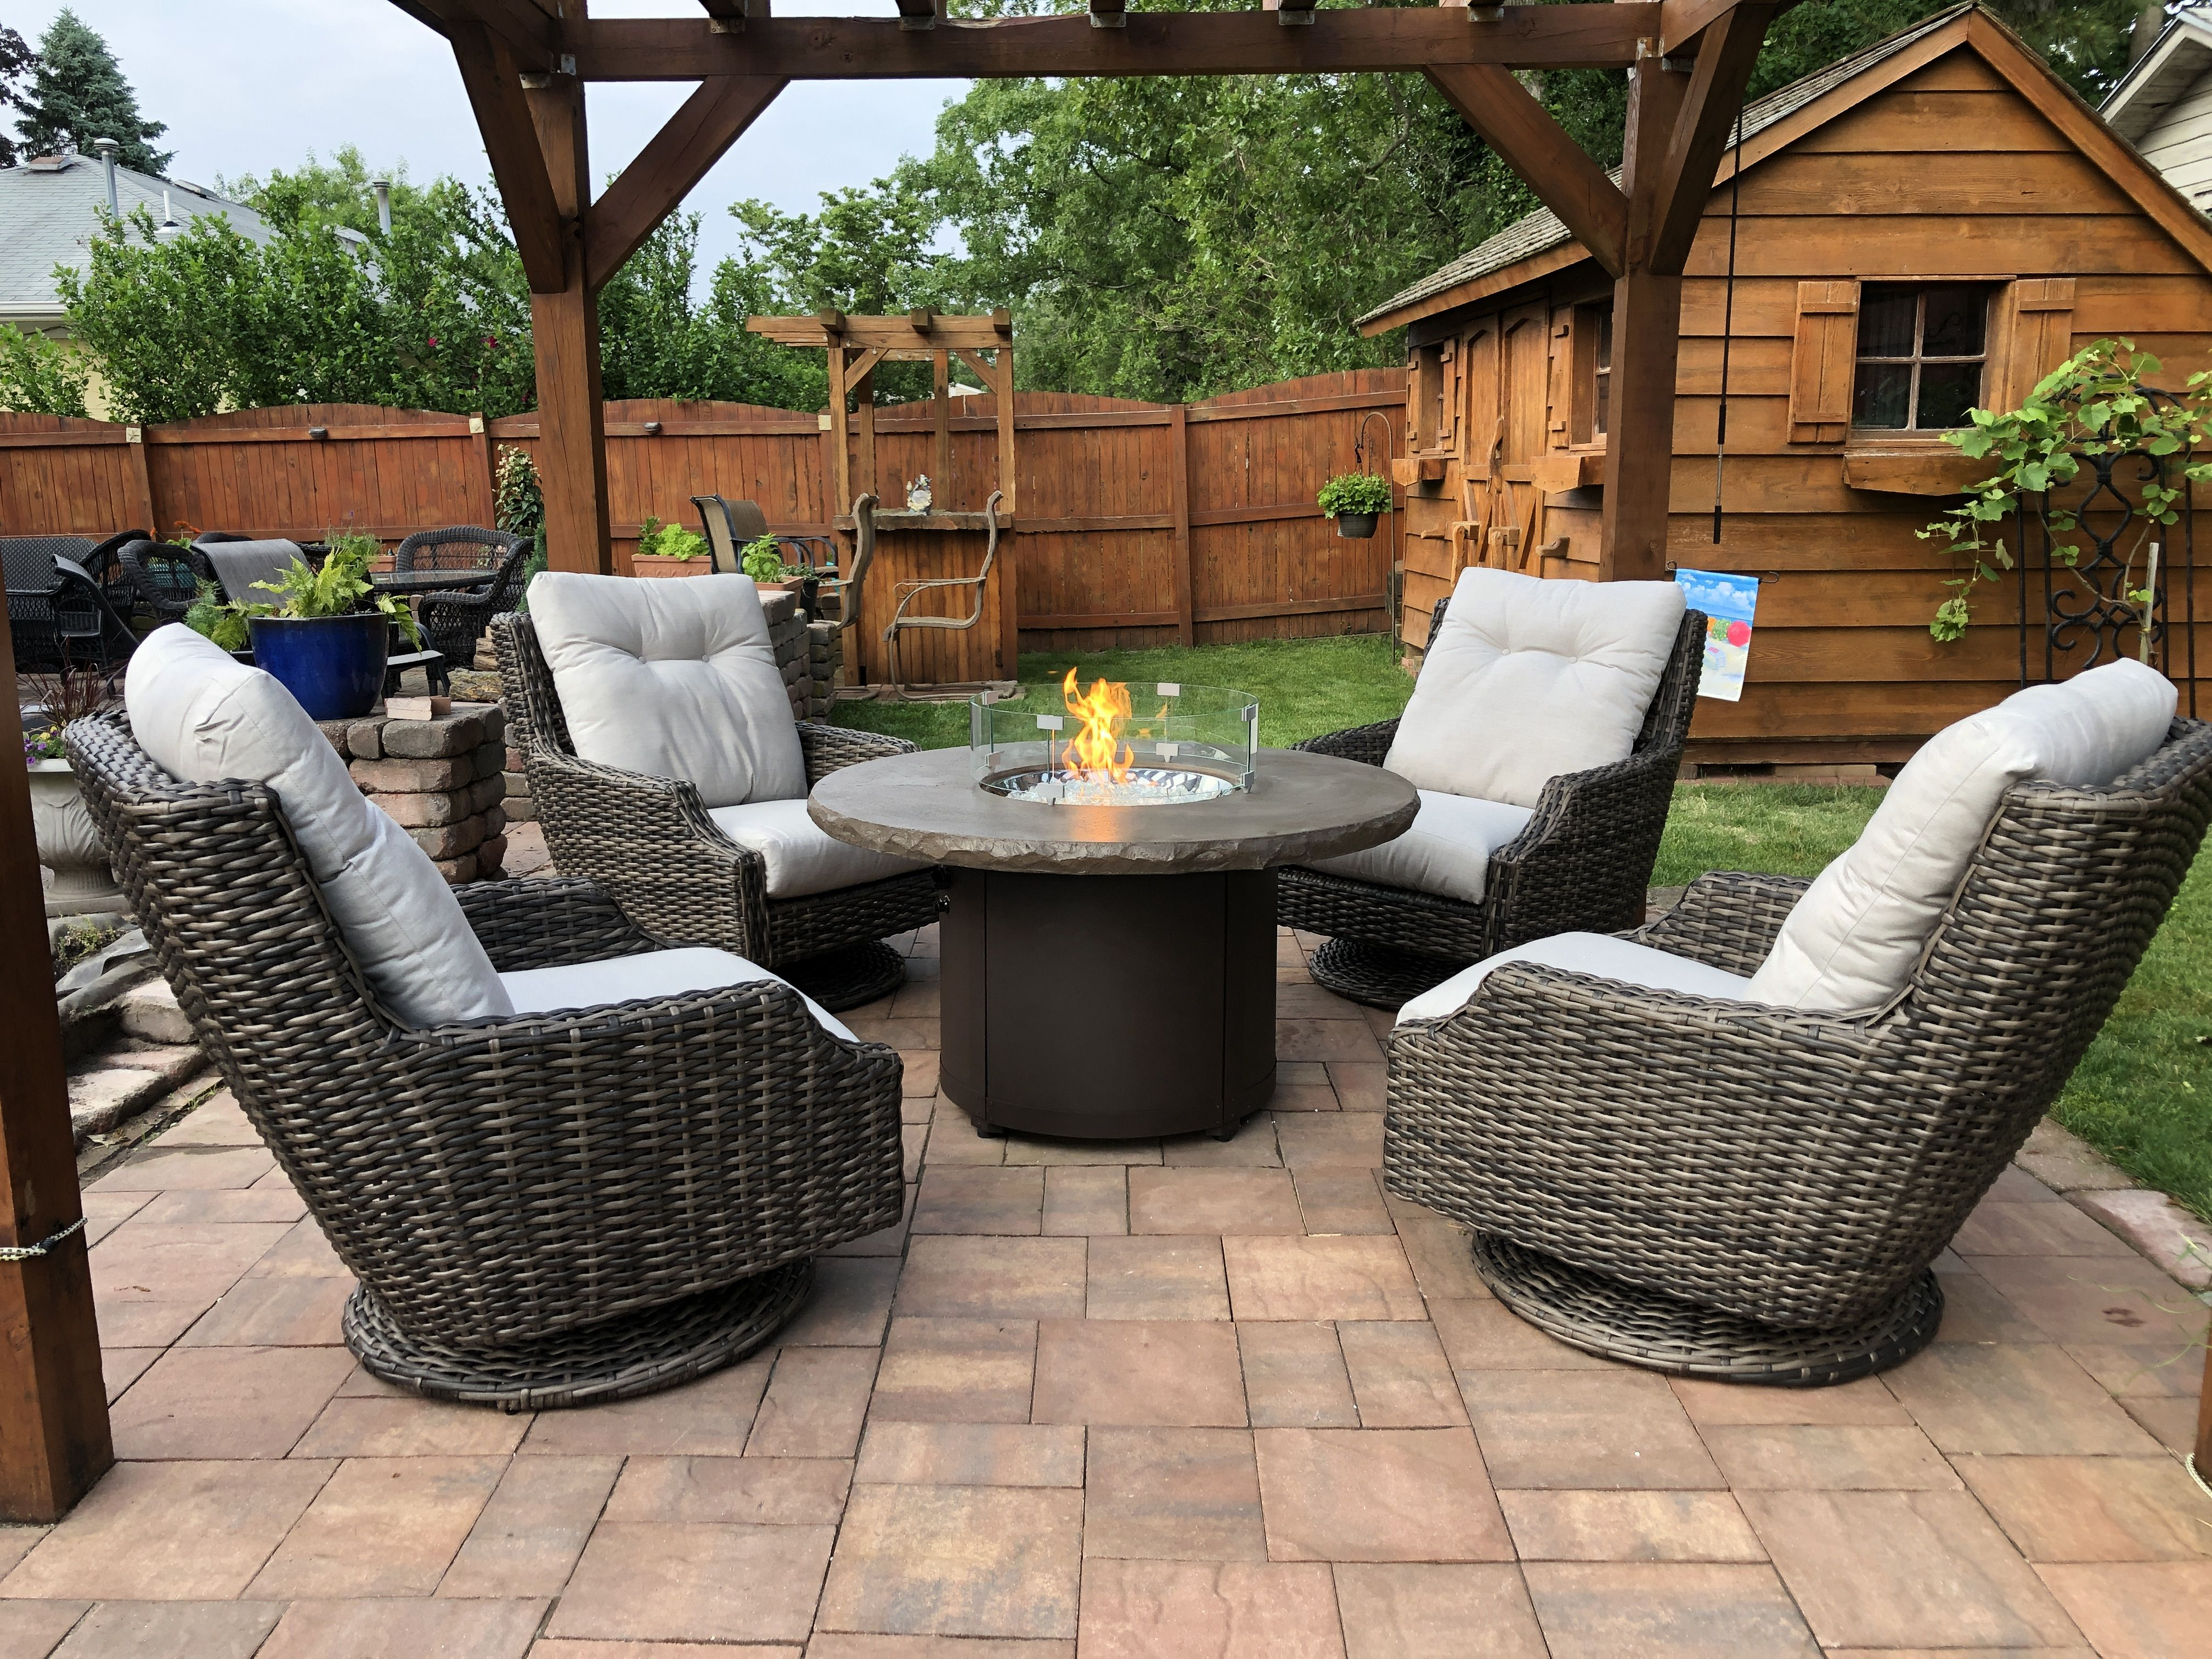 Largo Swivel Chat Groups By Lloyd Flanders Quick Ship The Wickery Outdoor Furniture New Jersey Patio Furniture Outdoor Furniture Ideas Backyards Patio Patio Furniture